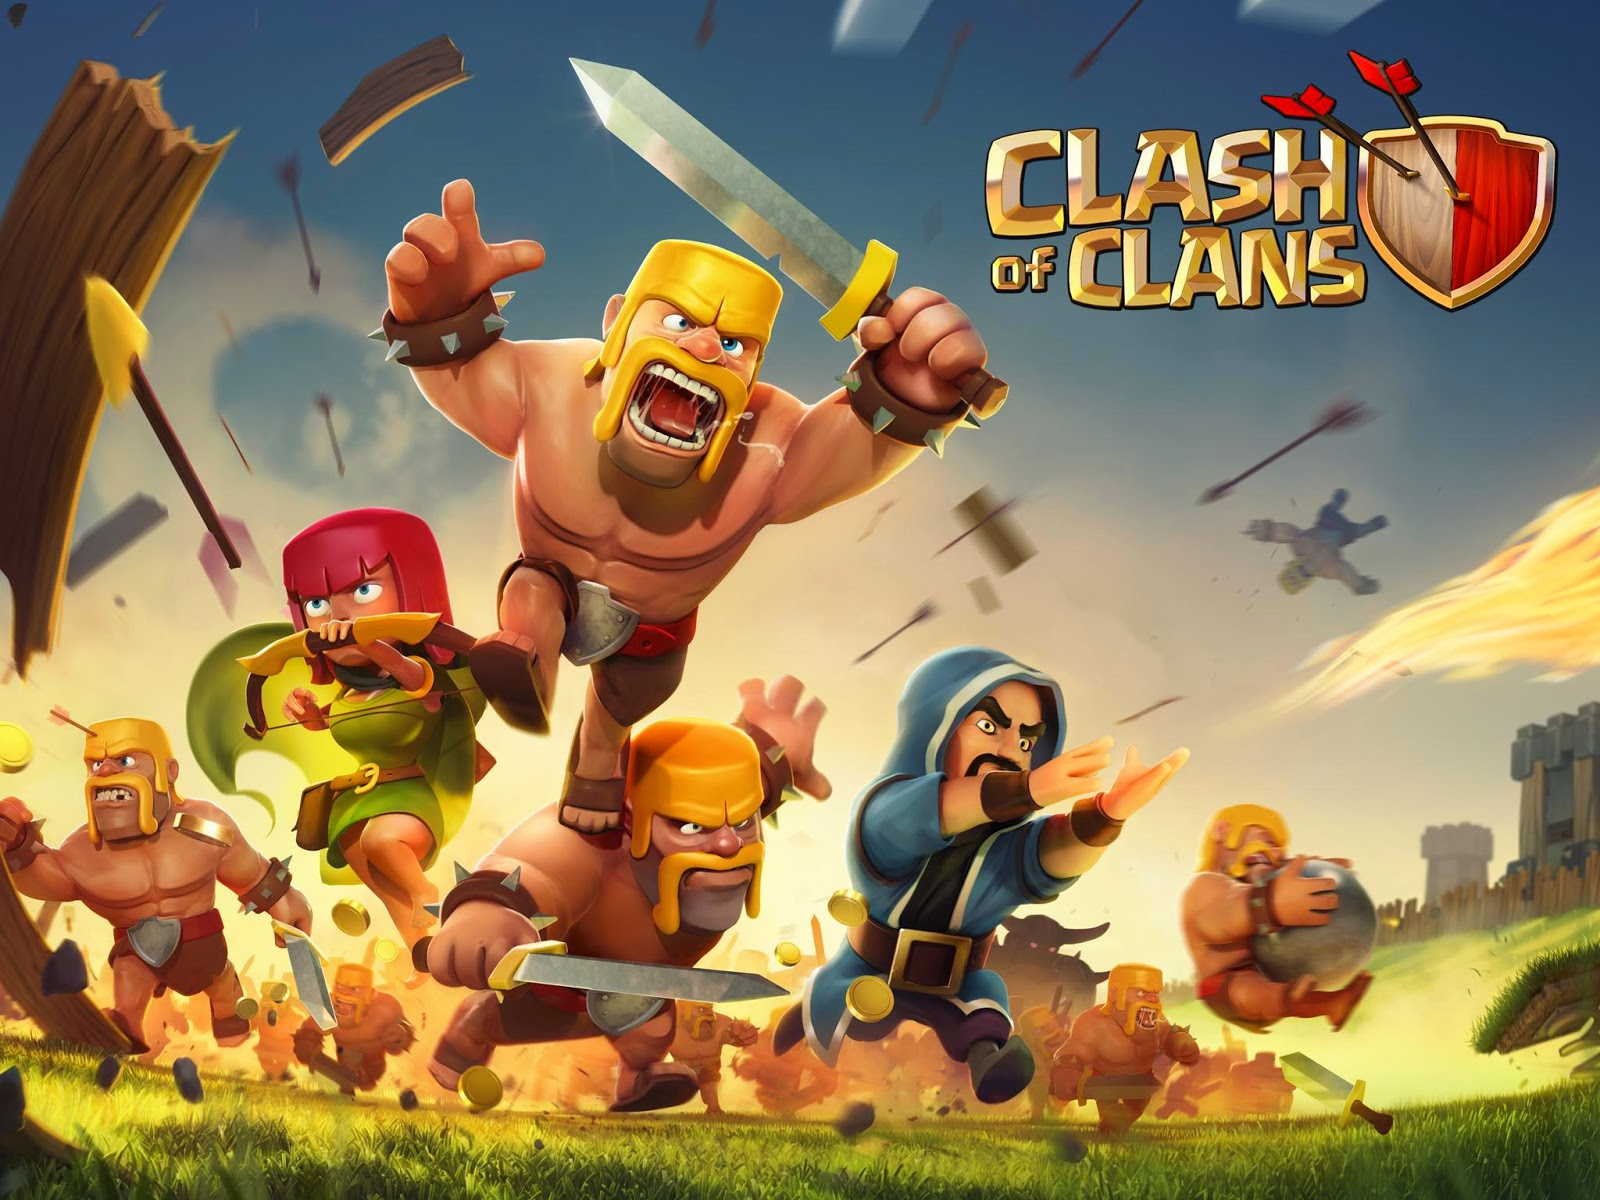 Clash of Clans Supercell Game HD Wallpaper